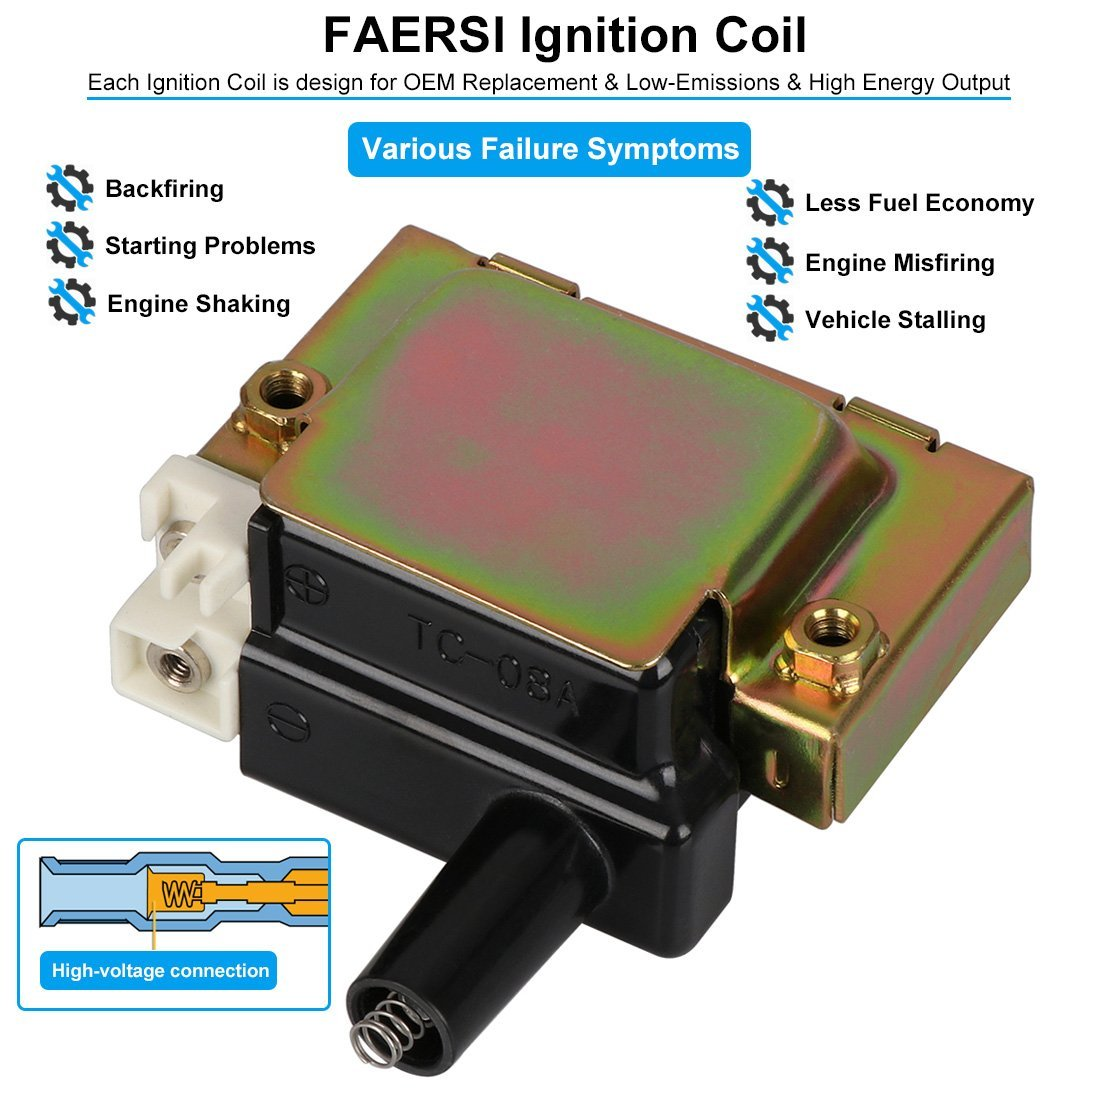 Ignition Coil Pack Of 1 Replaces Oe 30510 Pt2 006 30500 1992 Honda Prelude Paa A01 For 97 00 Acura Cl 92 01 Integra 18l 96 02 Accord 22l